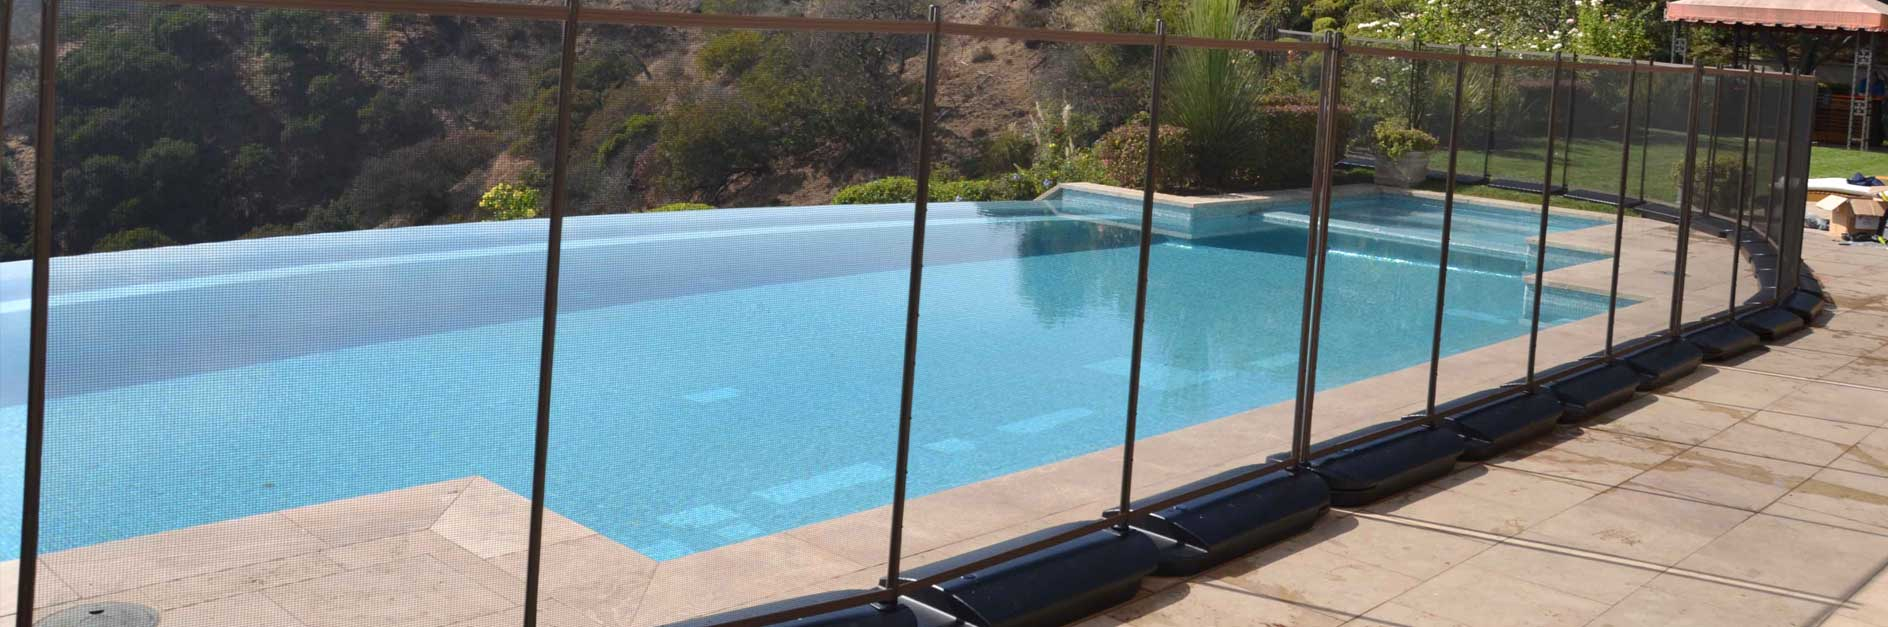 Temporary Pool Fencing No Holes Pool Fence pertaining to dimensions 1888 X 627